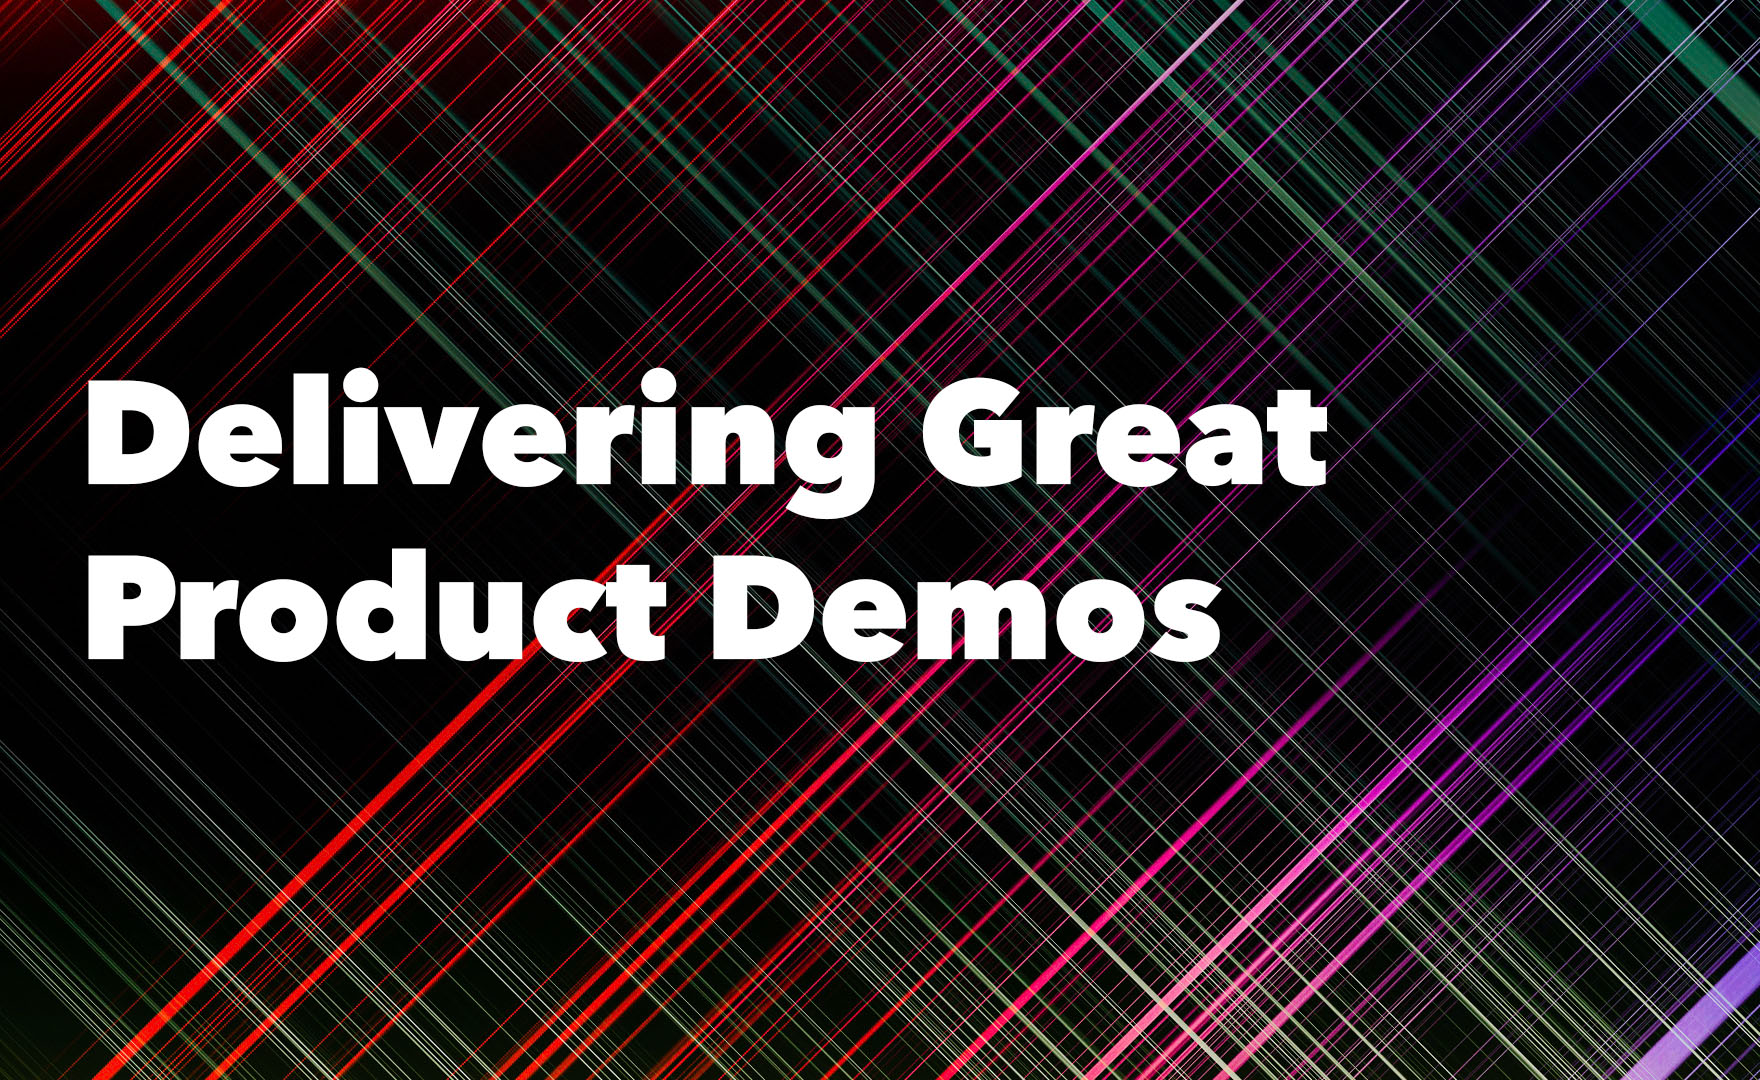 Advice for Delivering Great Product Demos